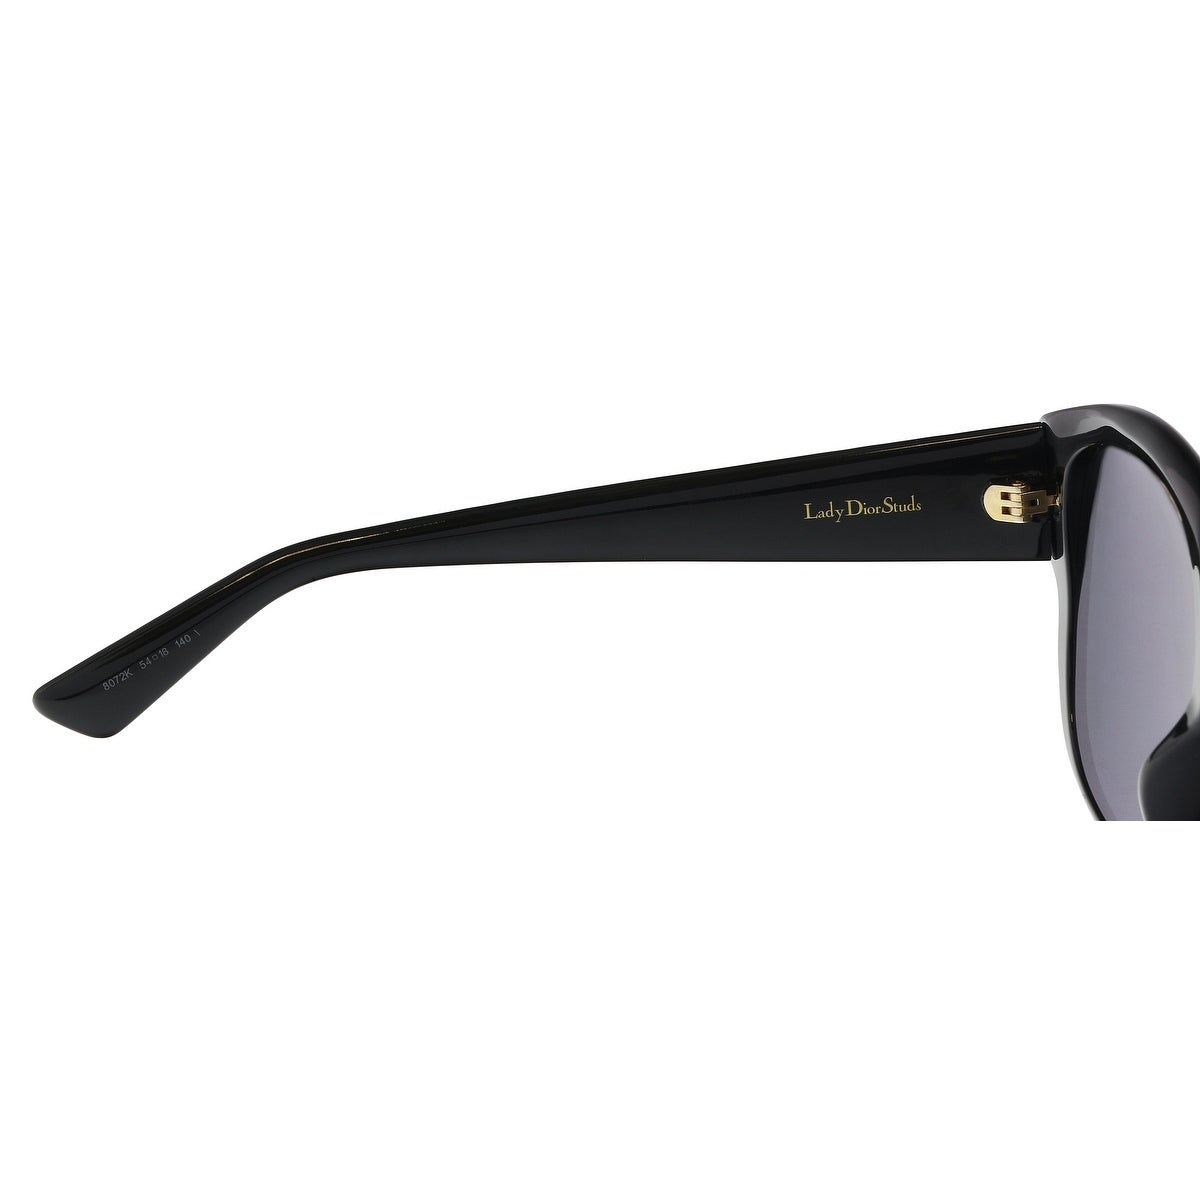 8852b50c1e Shop Christian Dior LADYDIORSTUDS 0807 Black Square Sunglasses - 54-18-140  - On Sale - Free Shipping Today - Overstock - 21158010